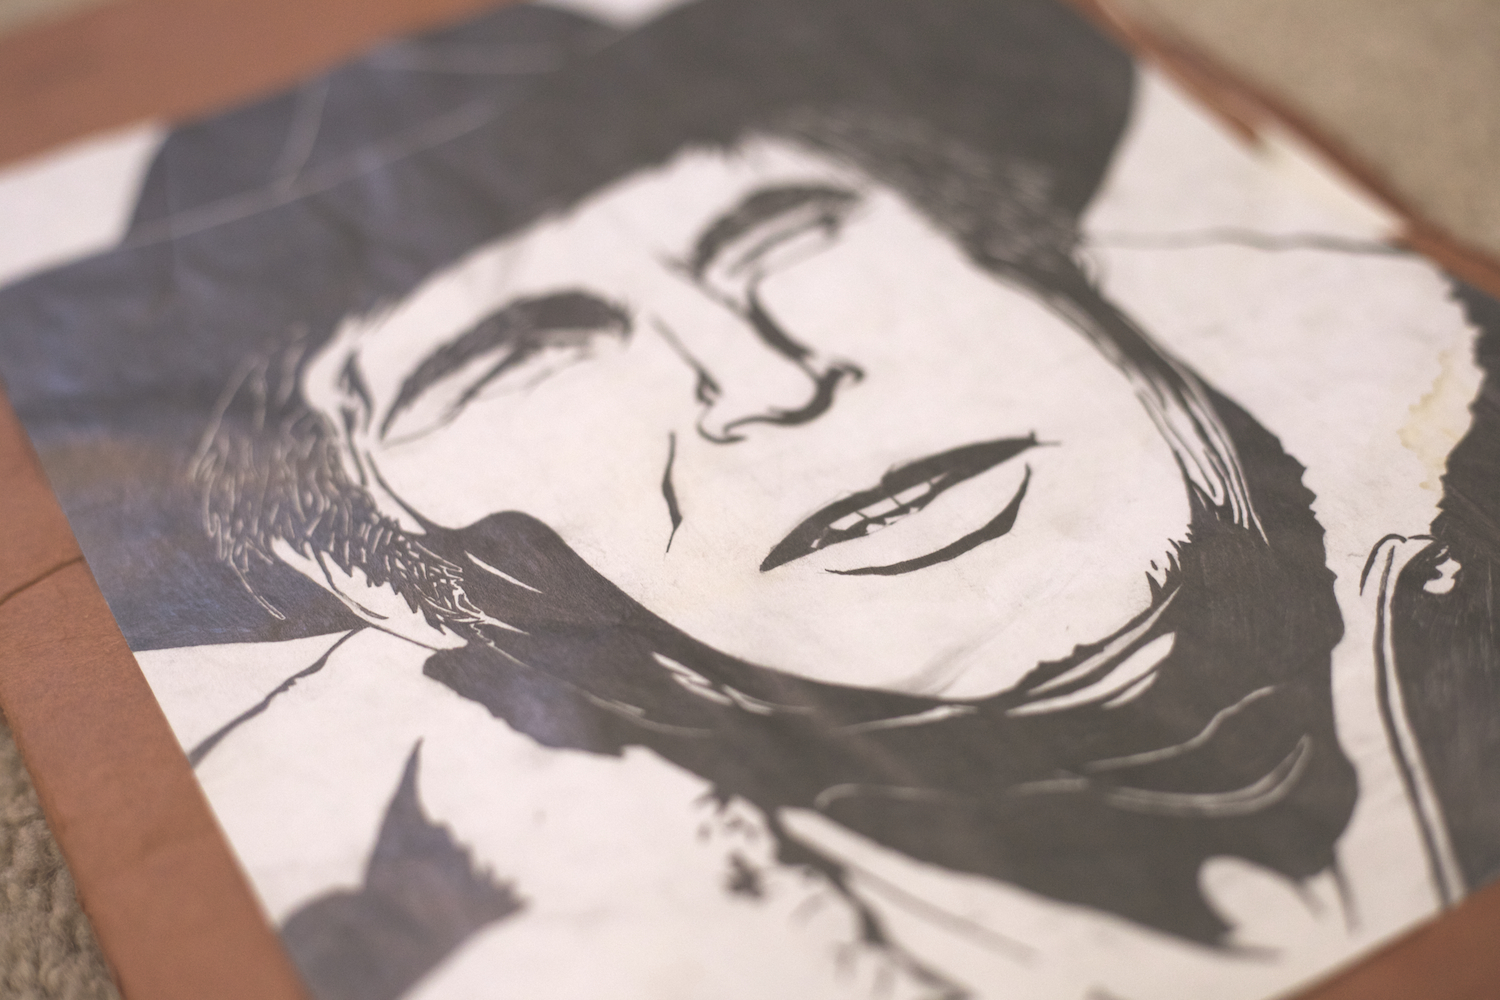 sketch-artist-for-hire-using-stippling-lineage-shading-and-other-cross-hatching-creative-tactics-for-artwork